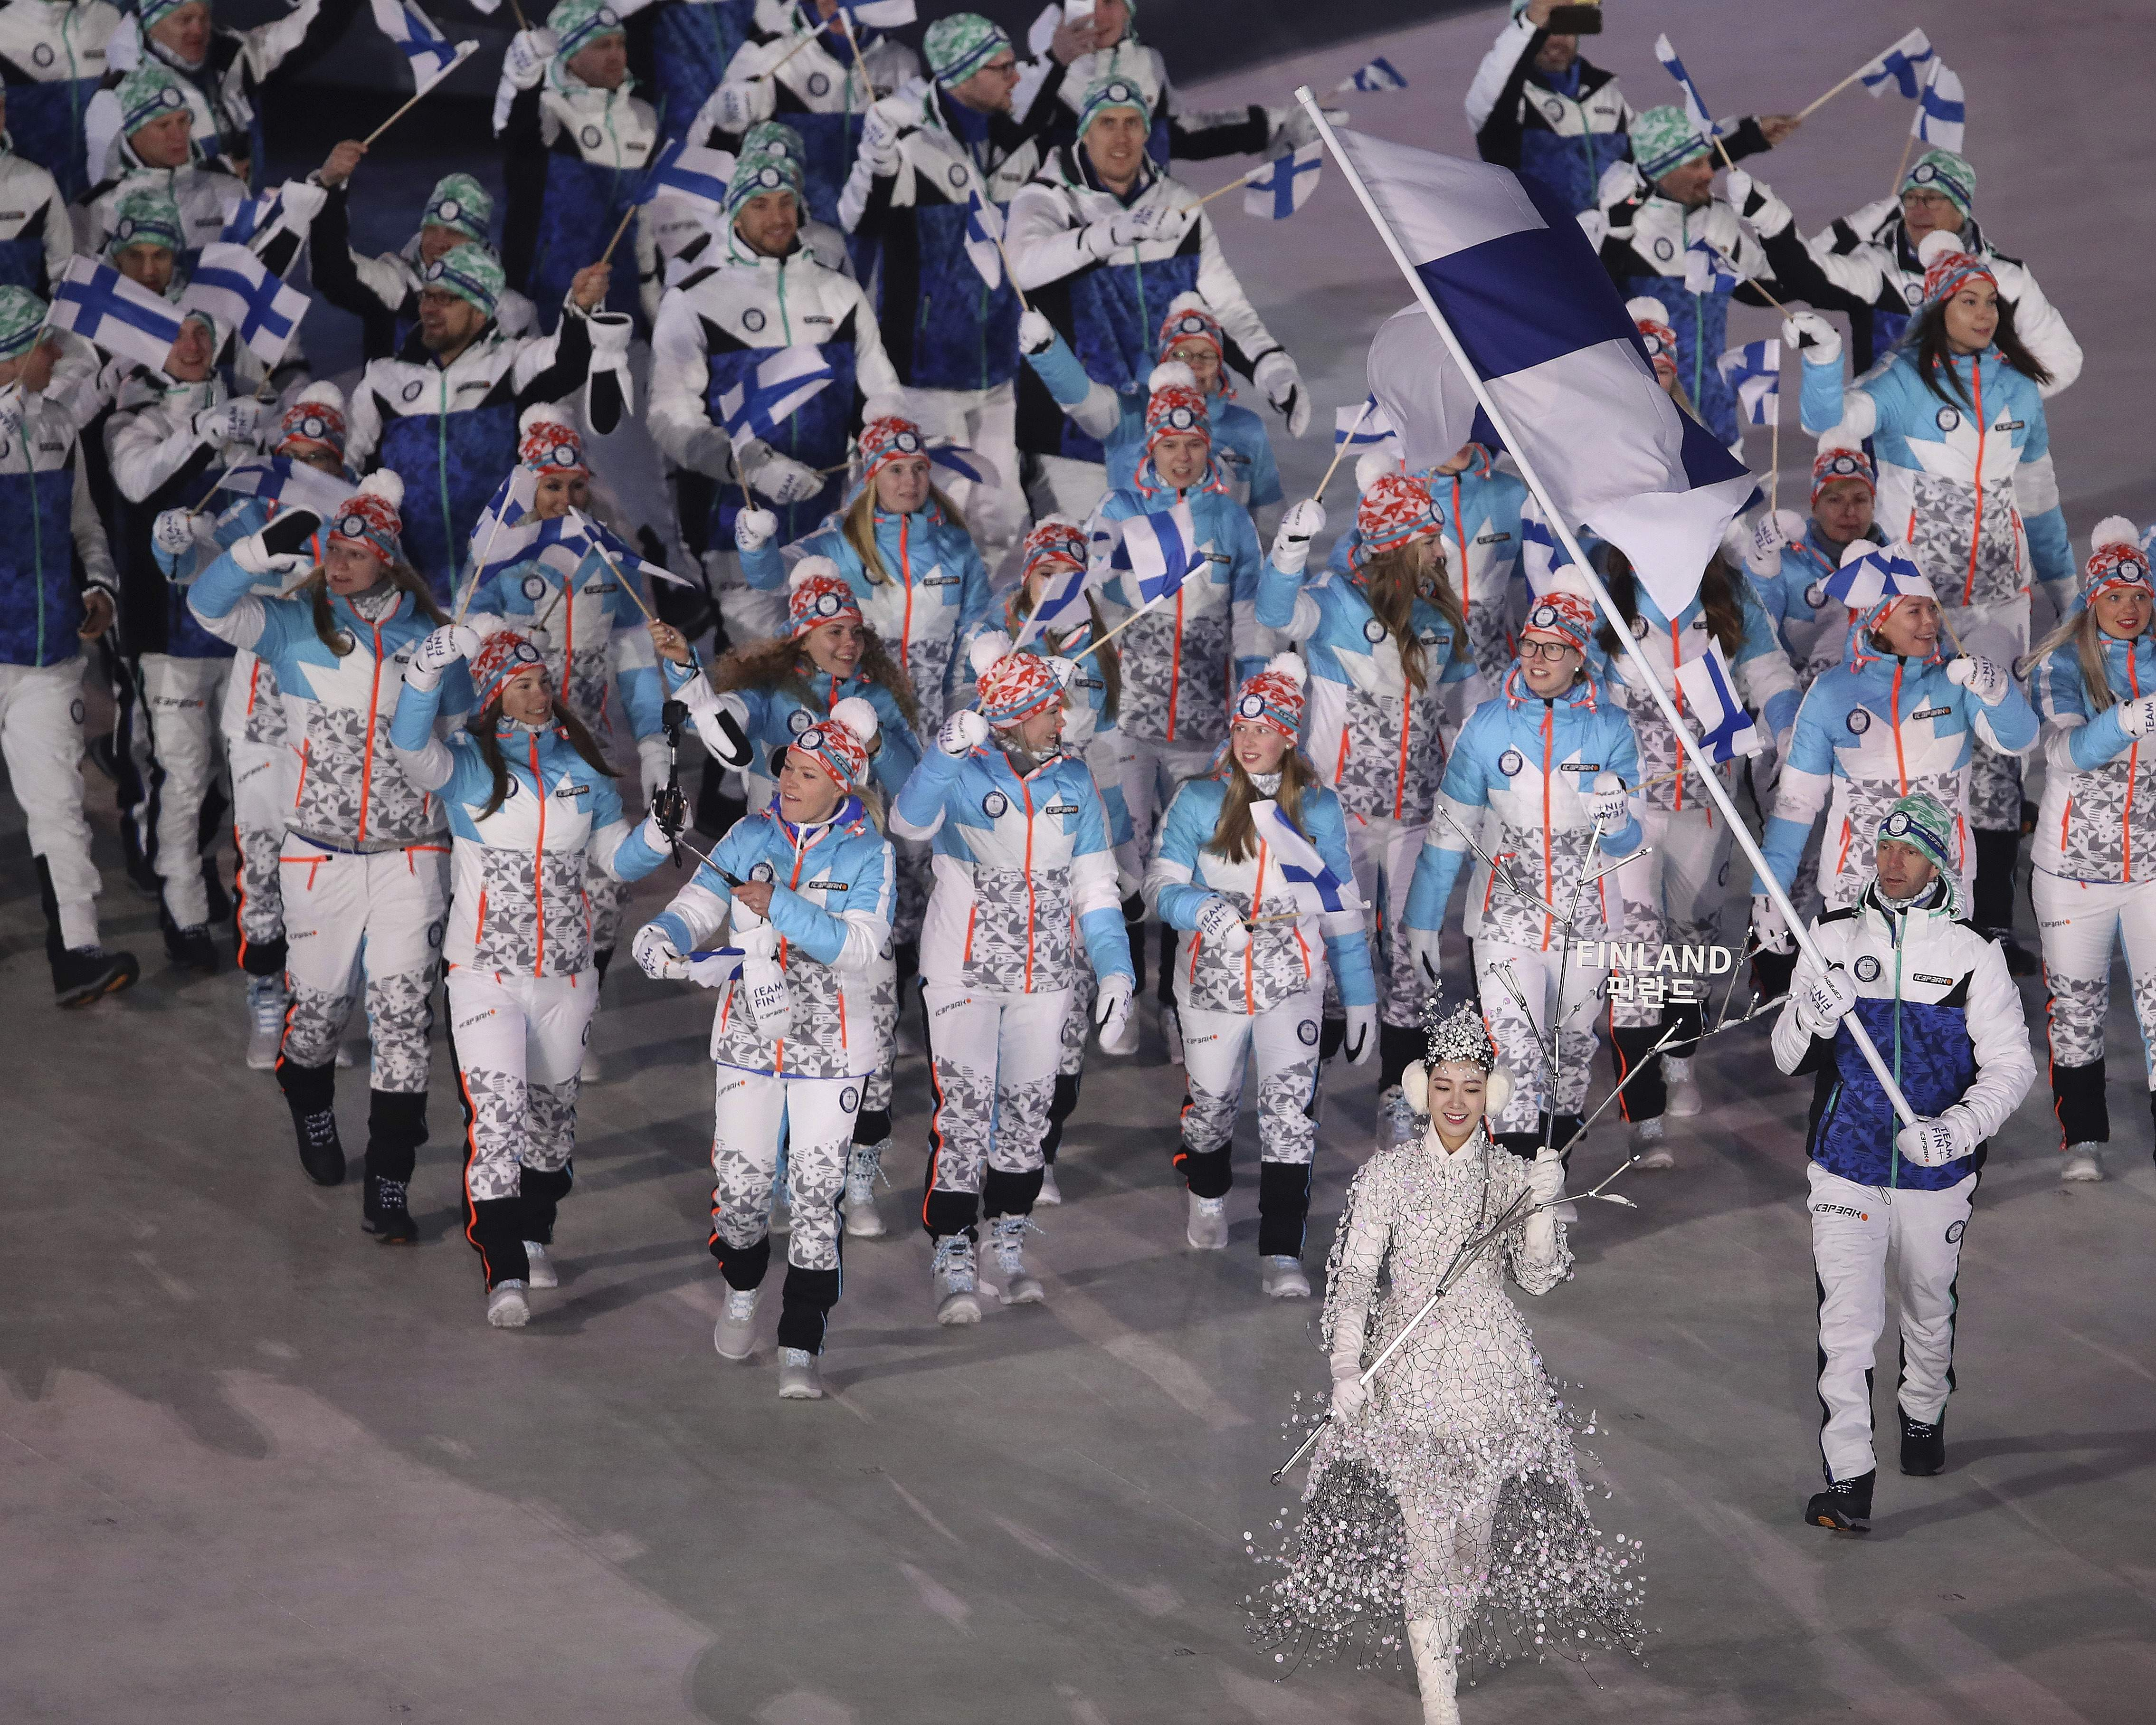 Janne Ahonen carries the flag of Finland during the opening ceremony of the 2018 Winter Olympics in Pyeongchang, South Korea, Friday, Feb. 9, 2018. (Sean Haffey/Pool Photo via AP)